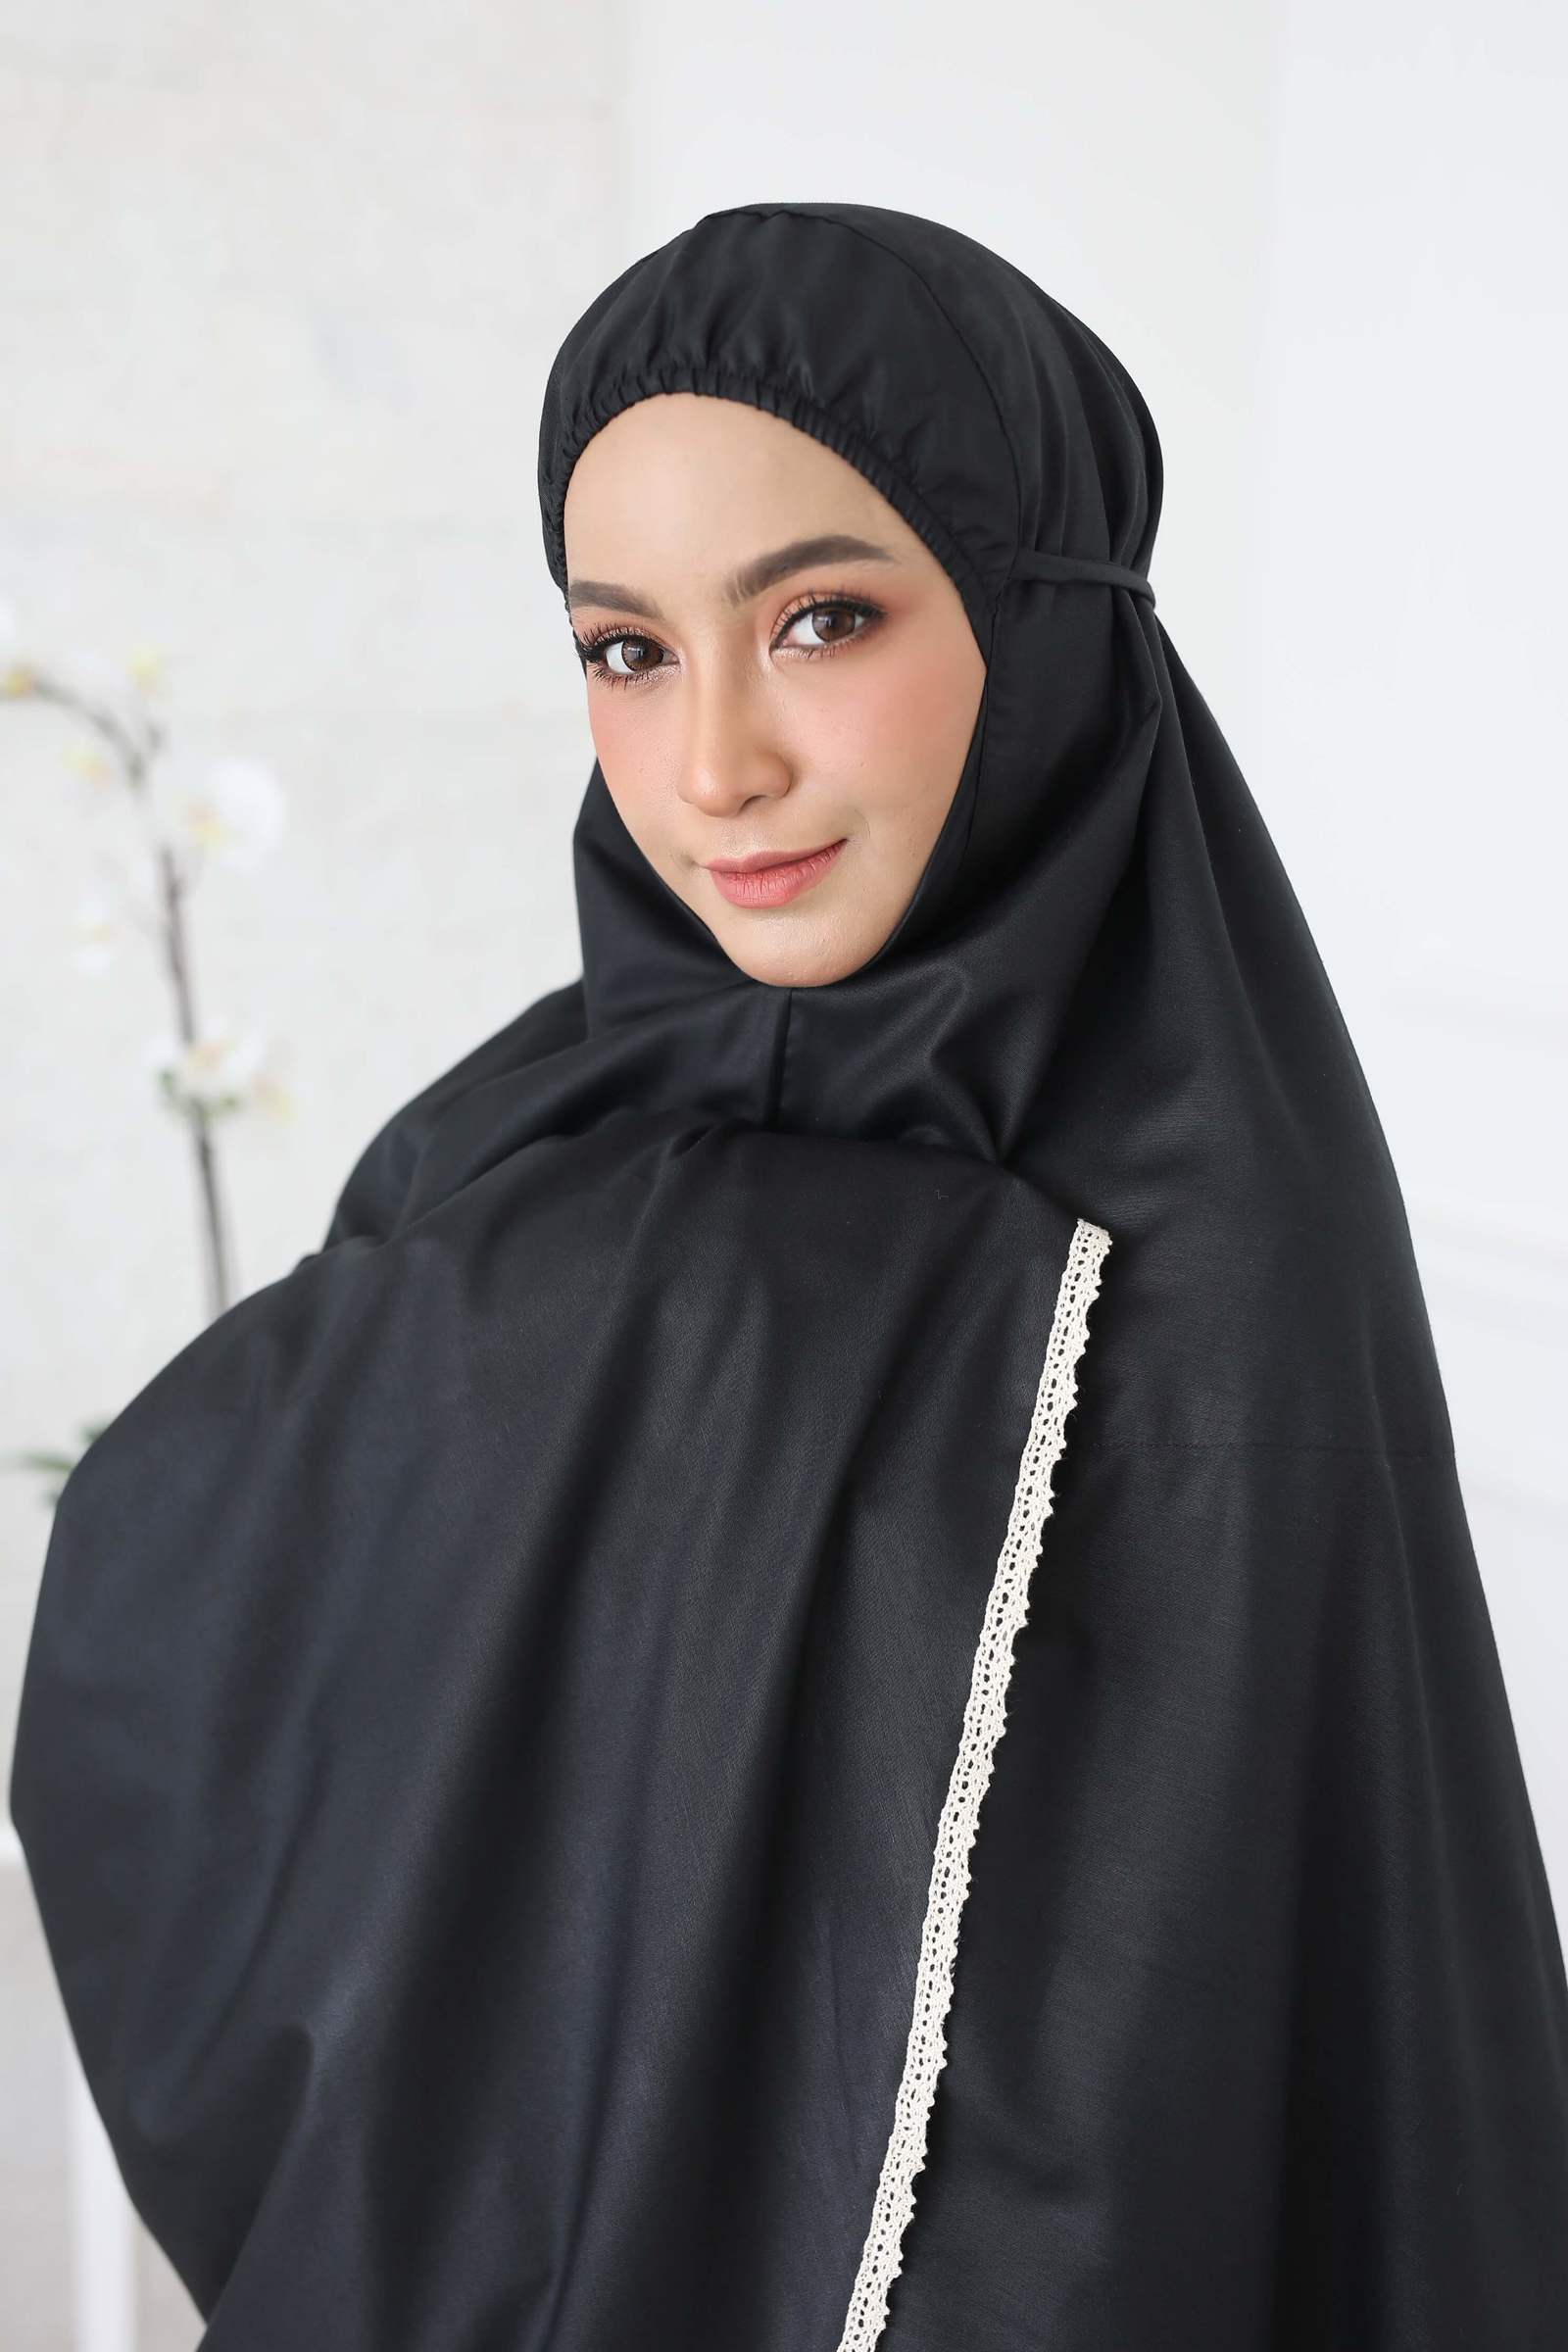 19_TCO Wardah - Black.JPG